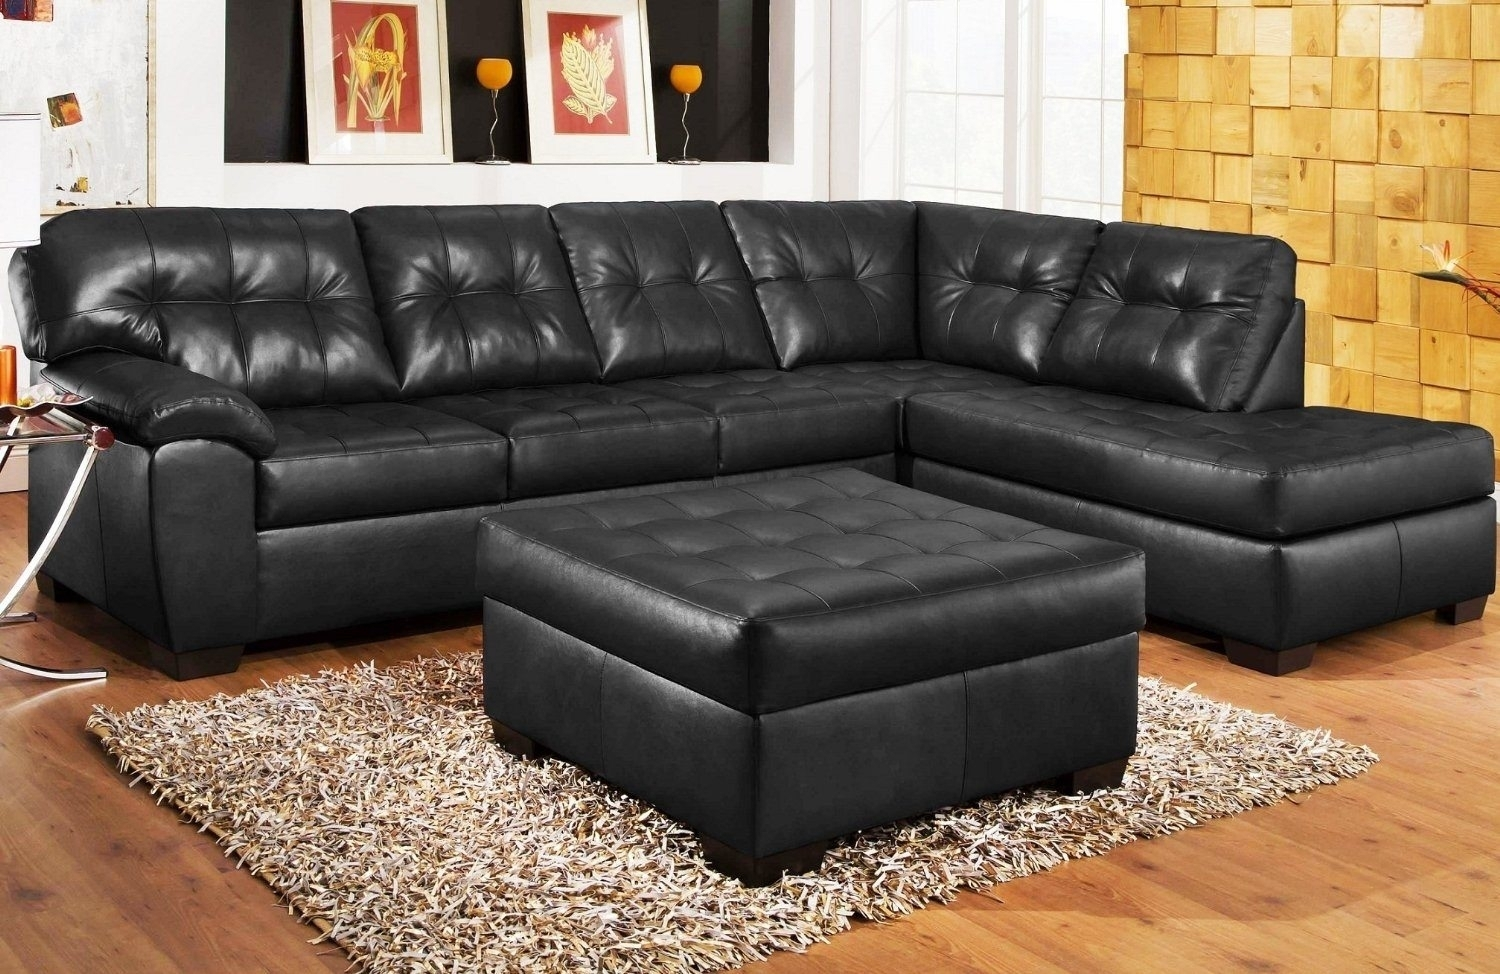 Collection Macys Leather Sectional Sofa - Mediasupload intended for Macys Leather Sectional Sofas (Image 1 of 10)